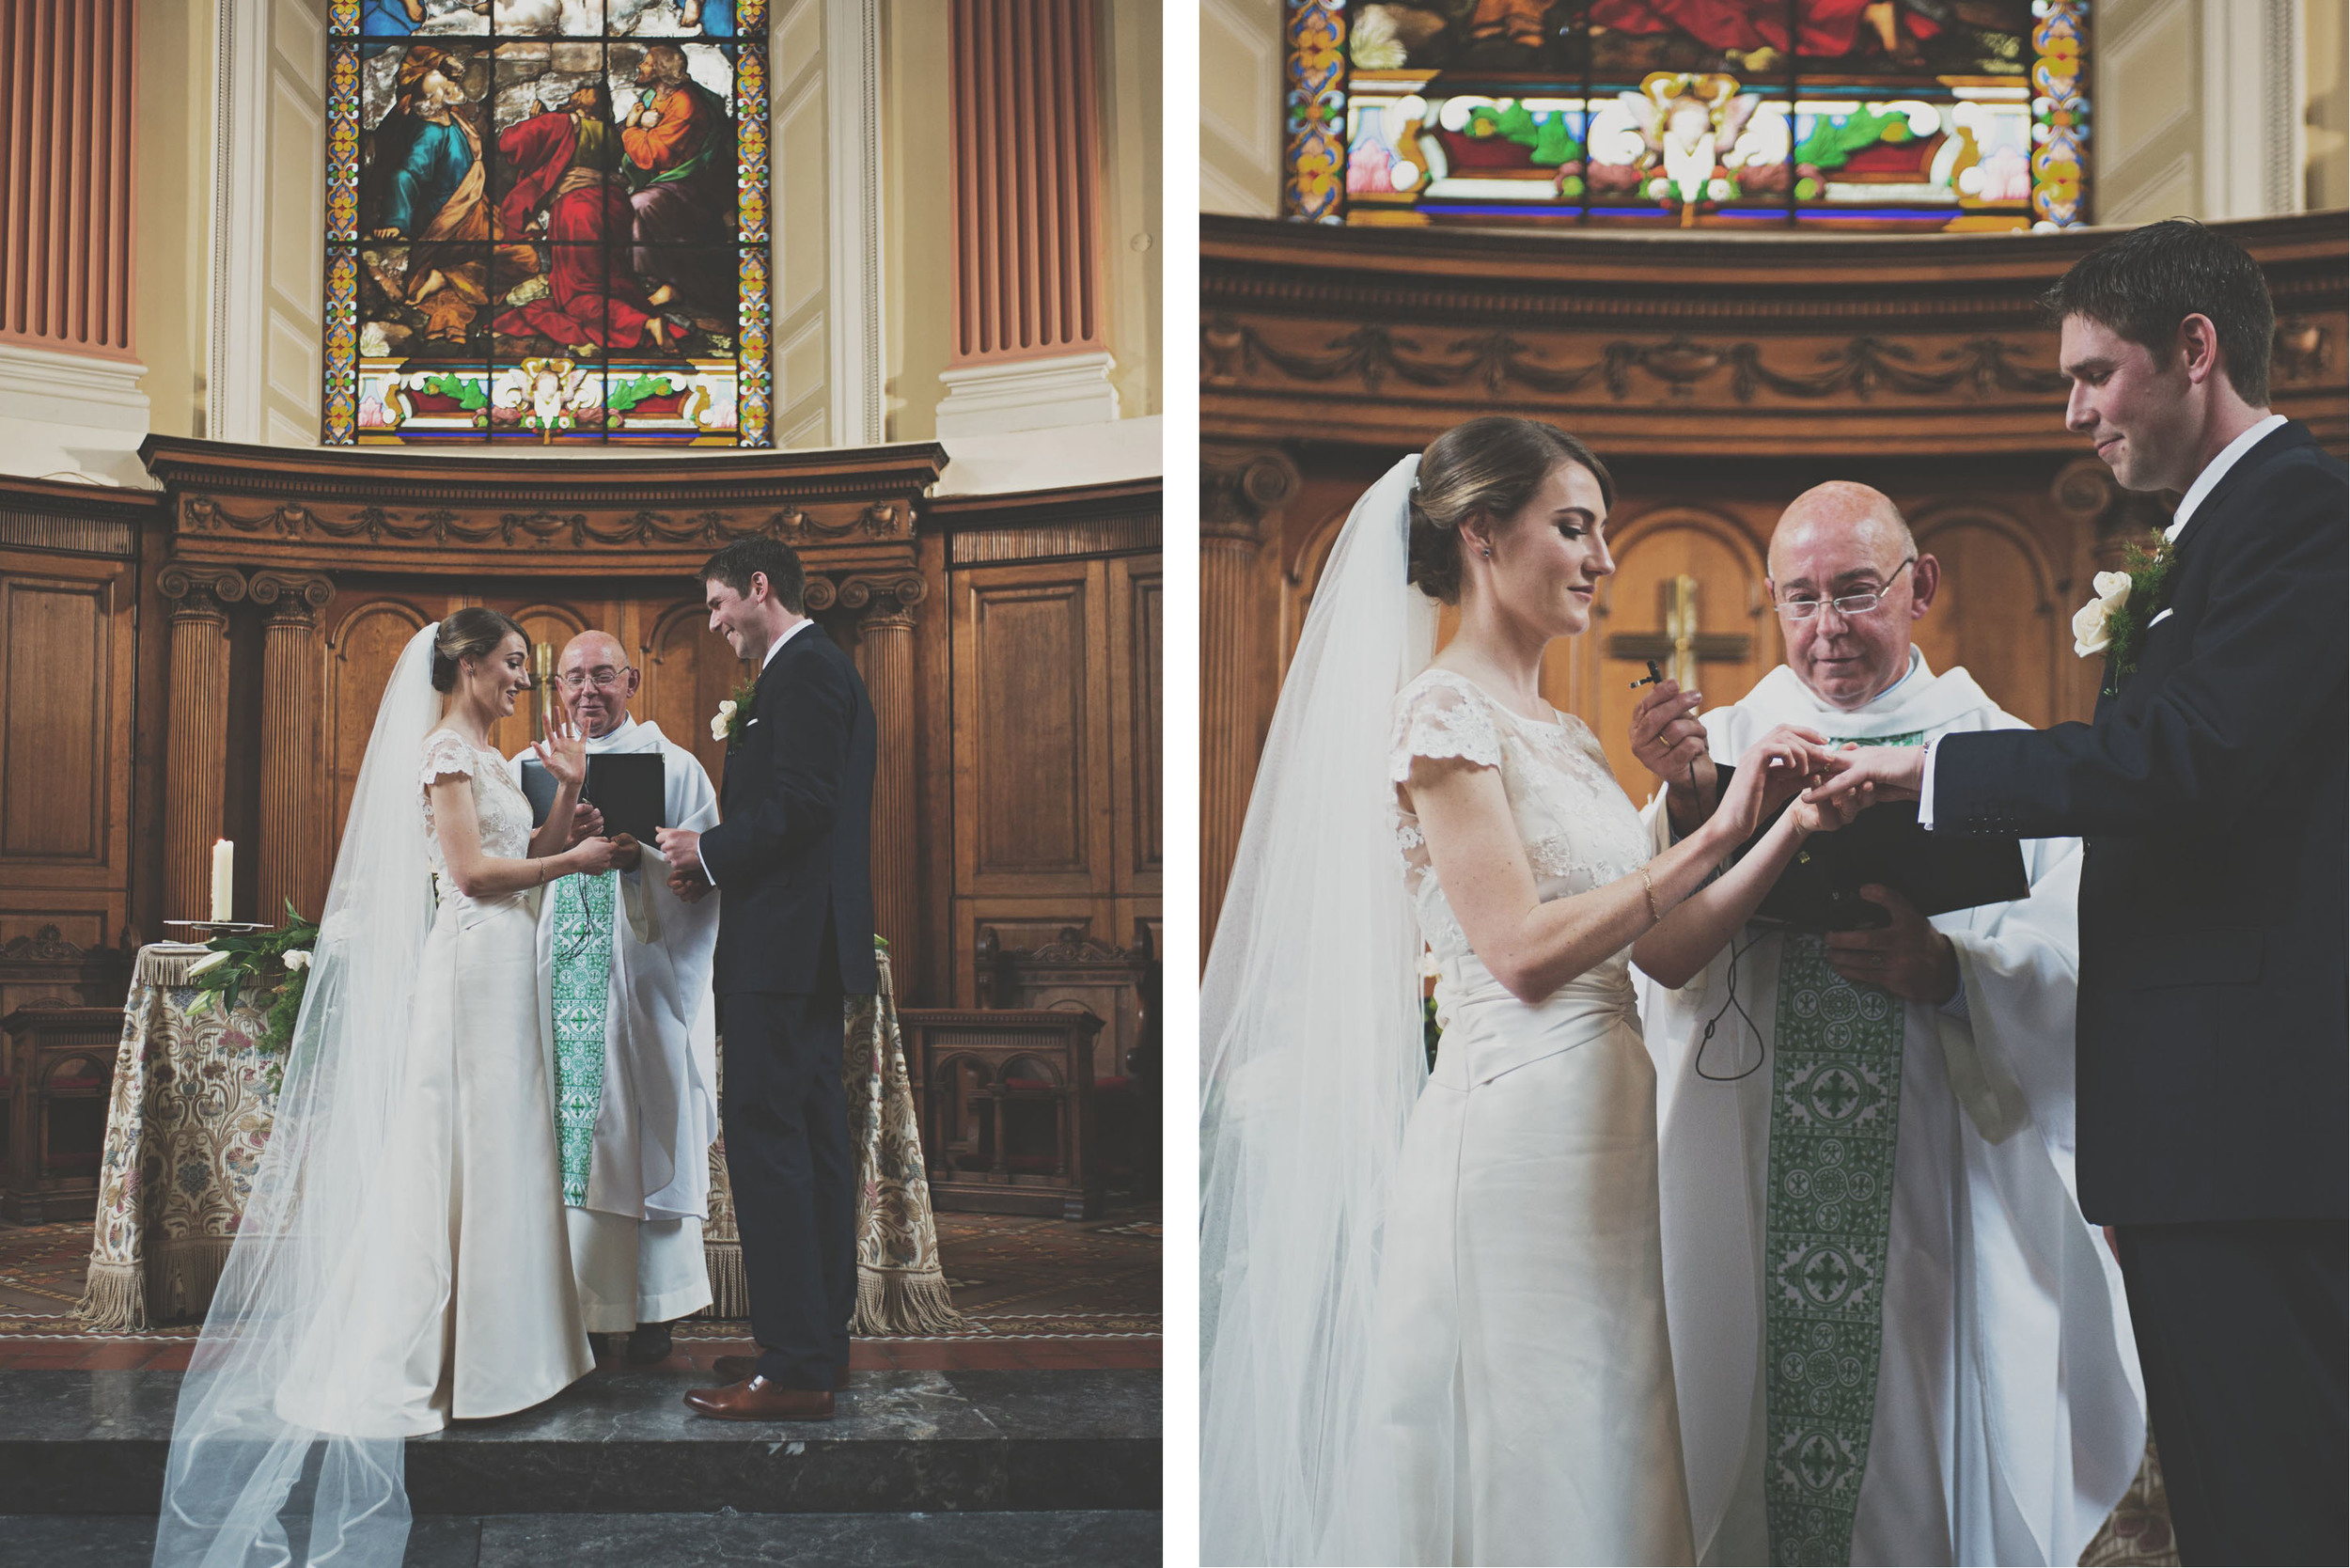 Getting married at Trinity Chapel Dublin